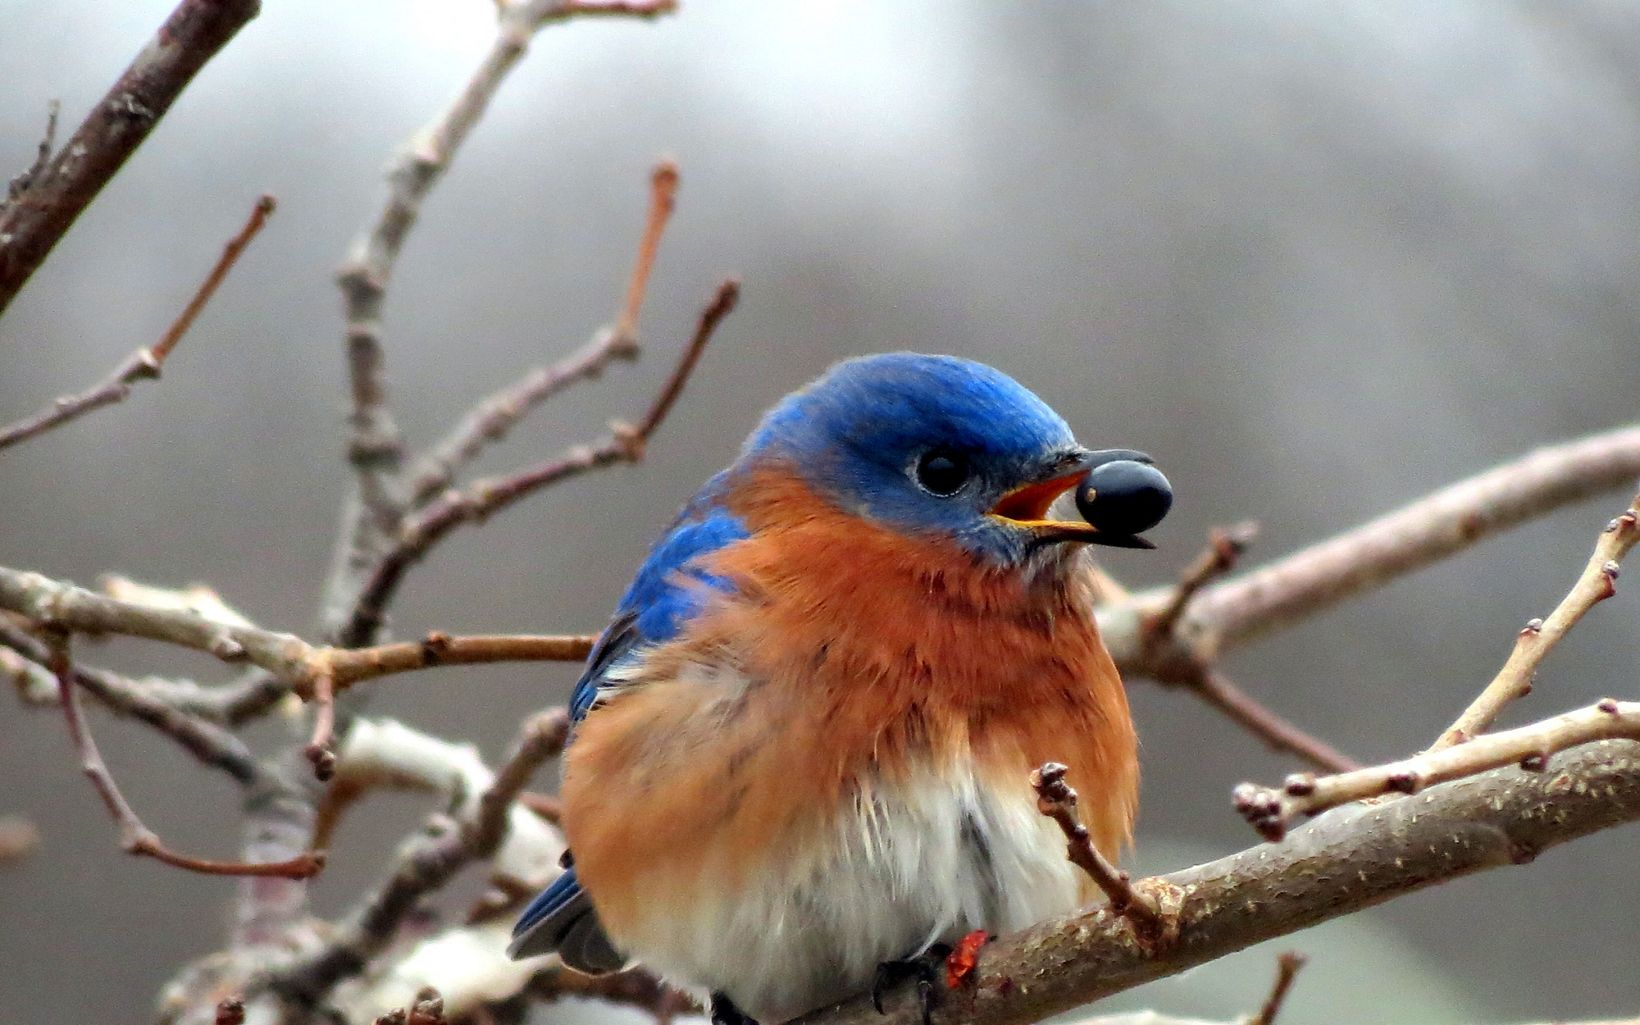 A bluebird holds a blueberry in its mouth.